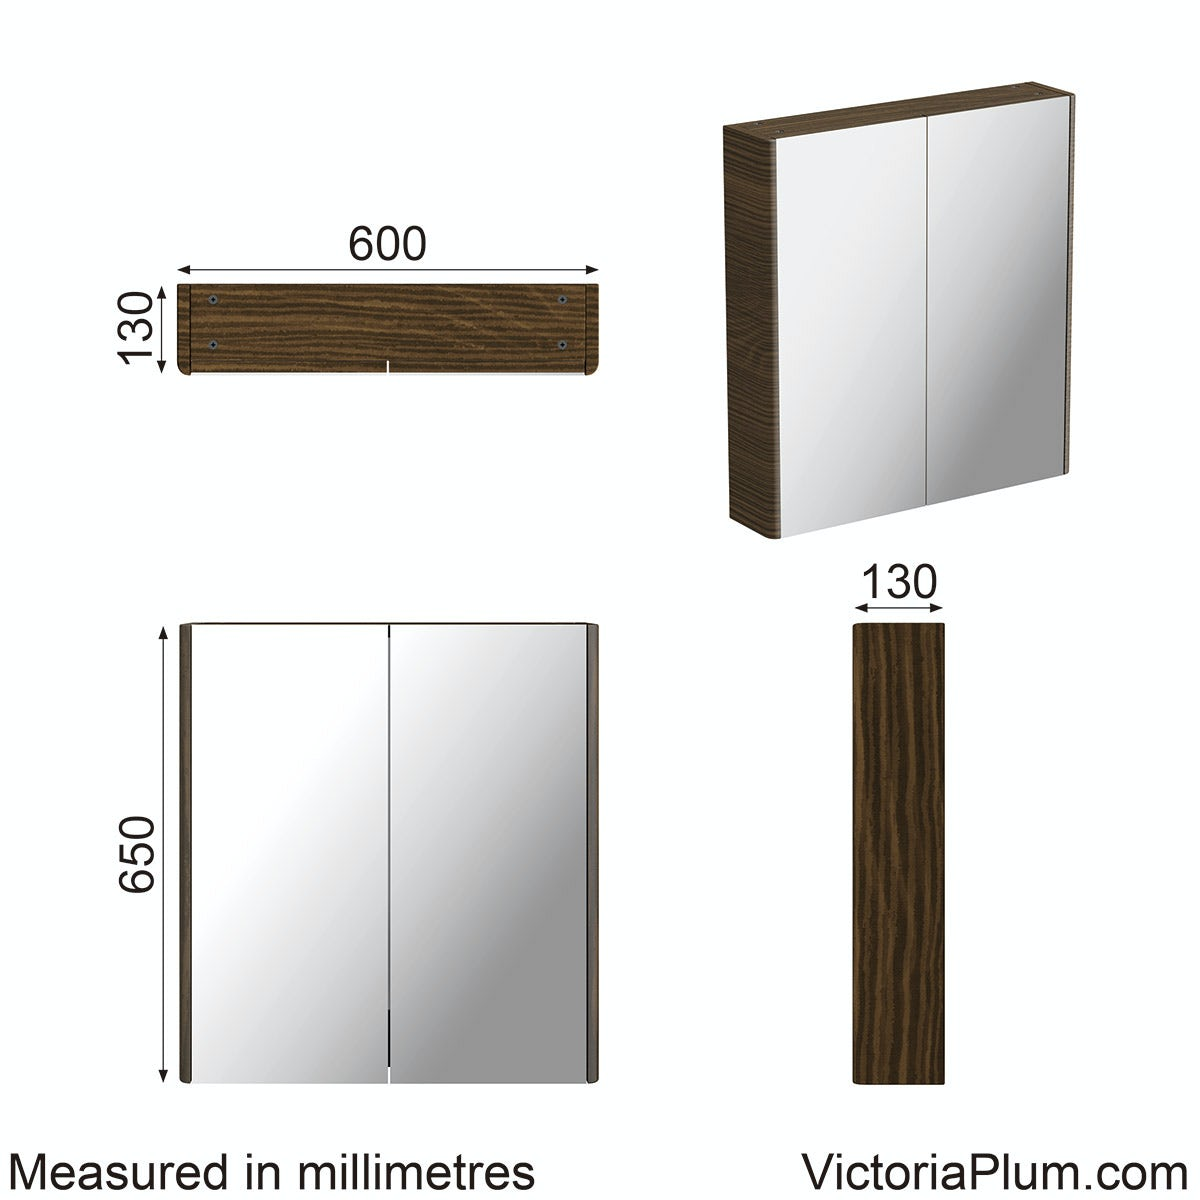 Dimensions for Mode Sherwood chestnut curved mirror cabinet 600mm